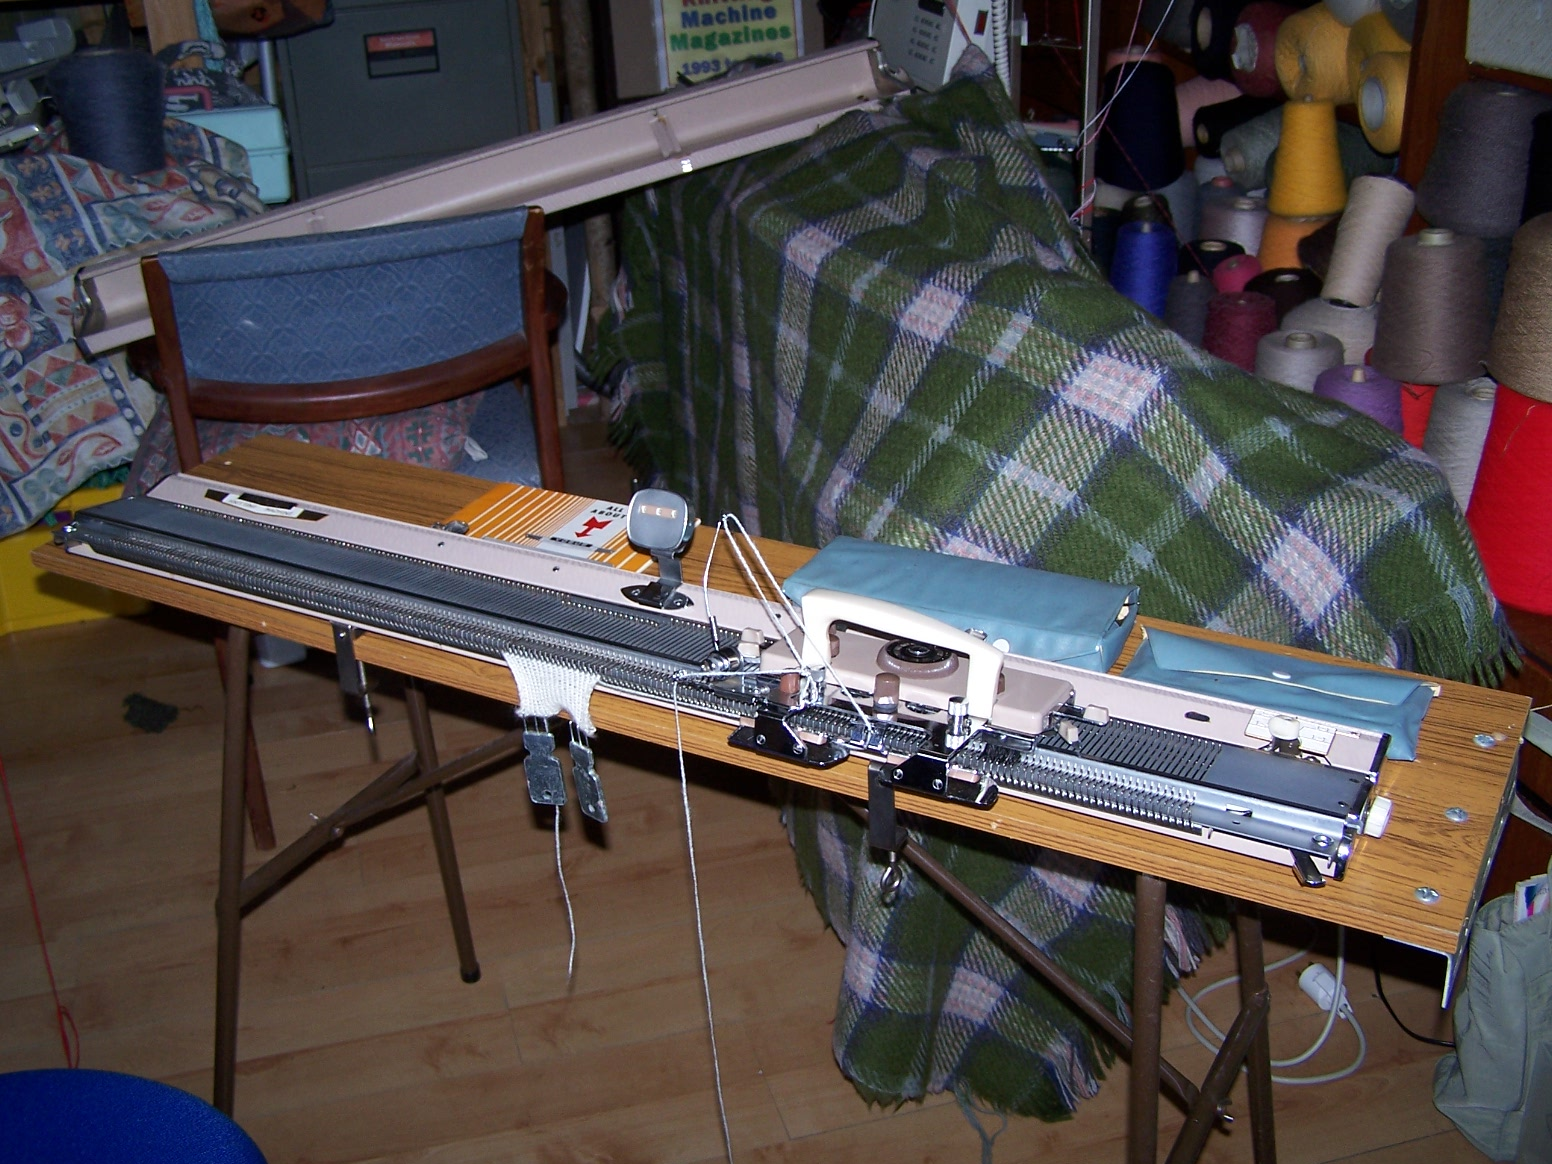 Vogue Knitting Machine